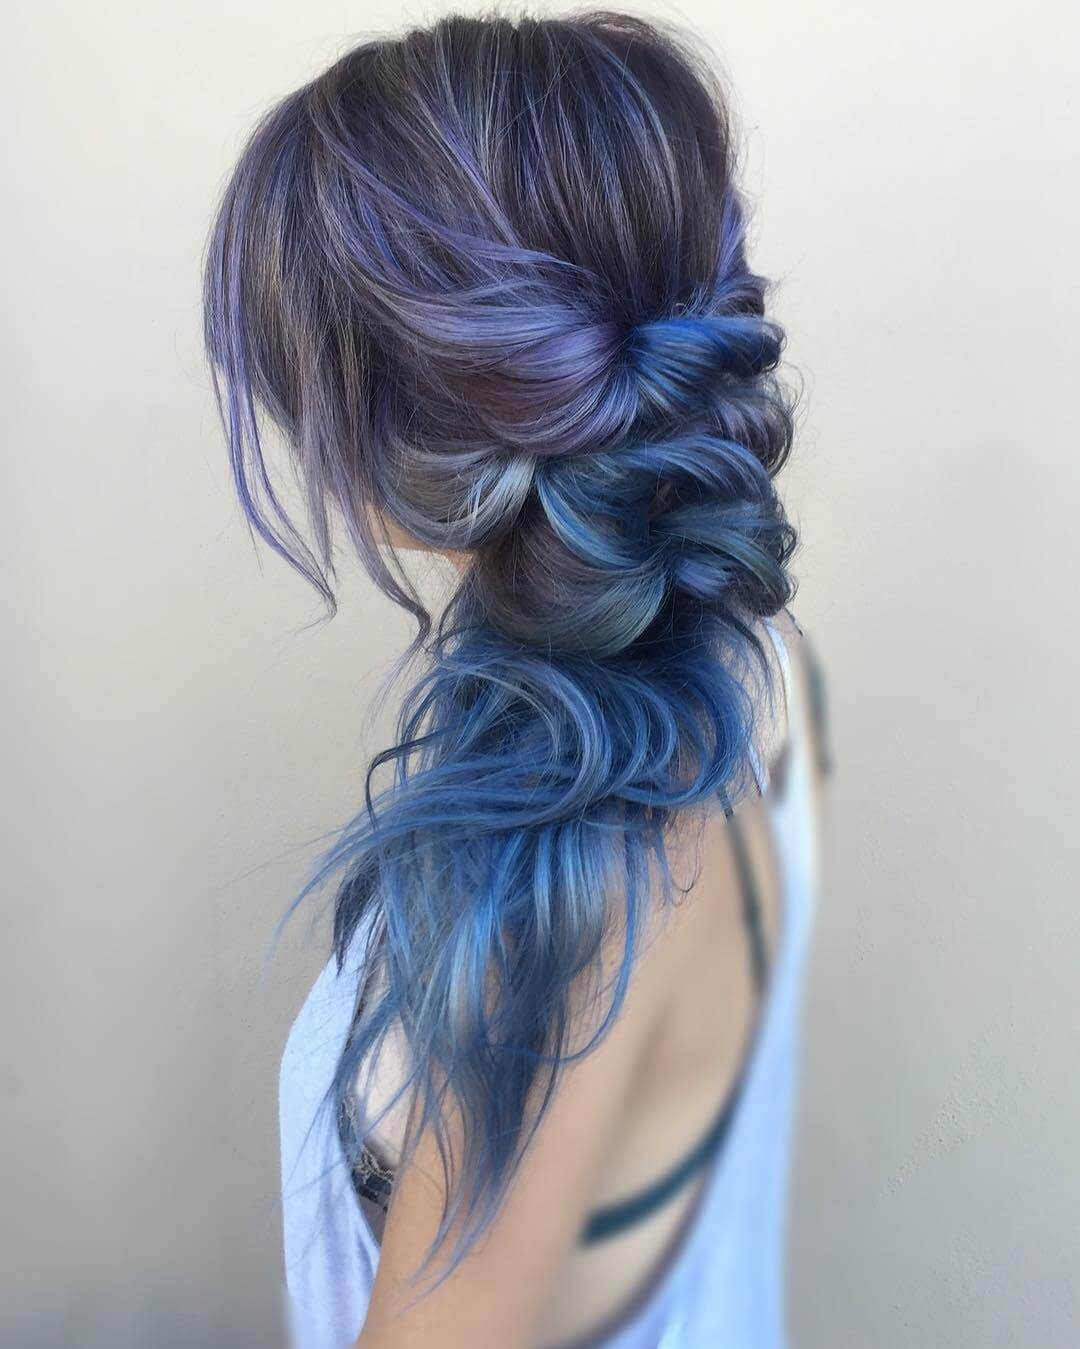 Mermaid Hair in Cool Colors